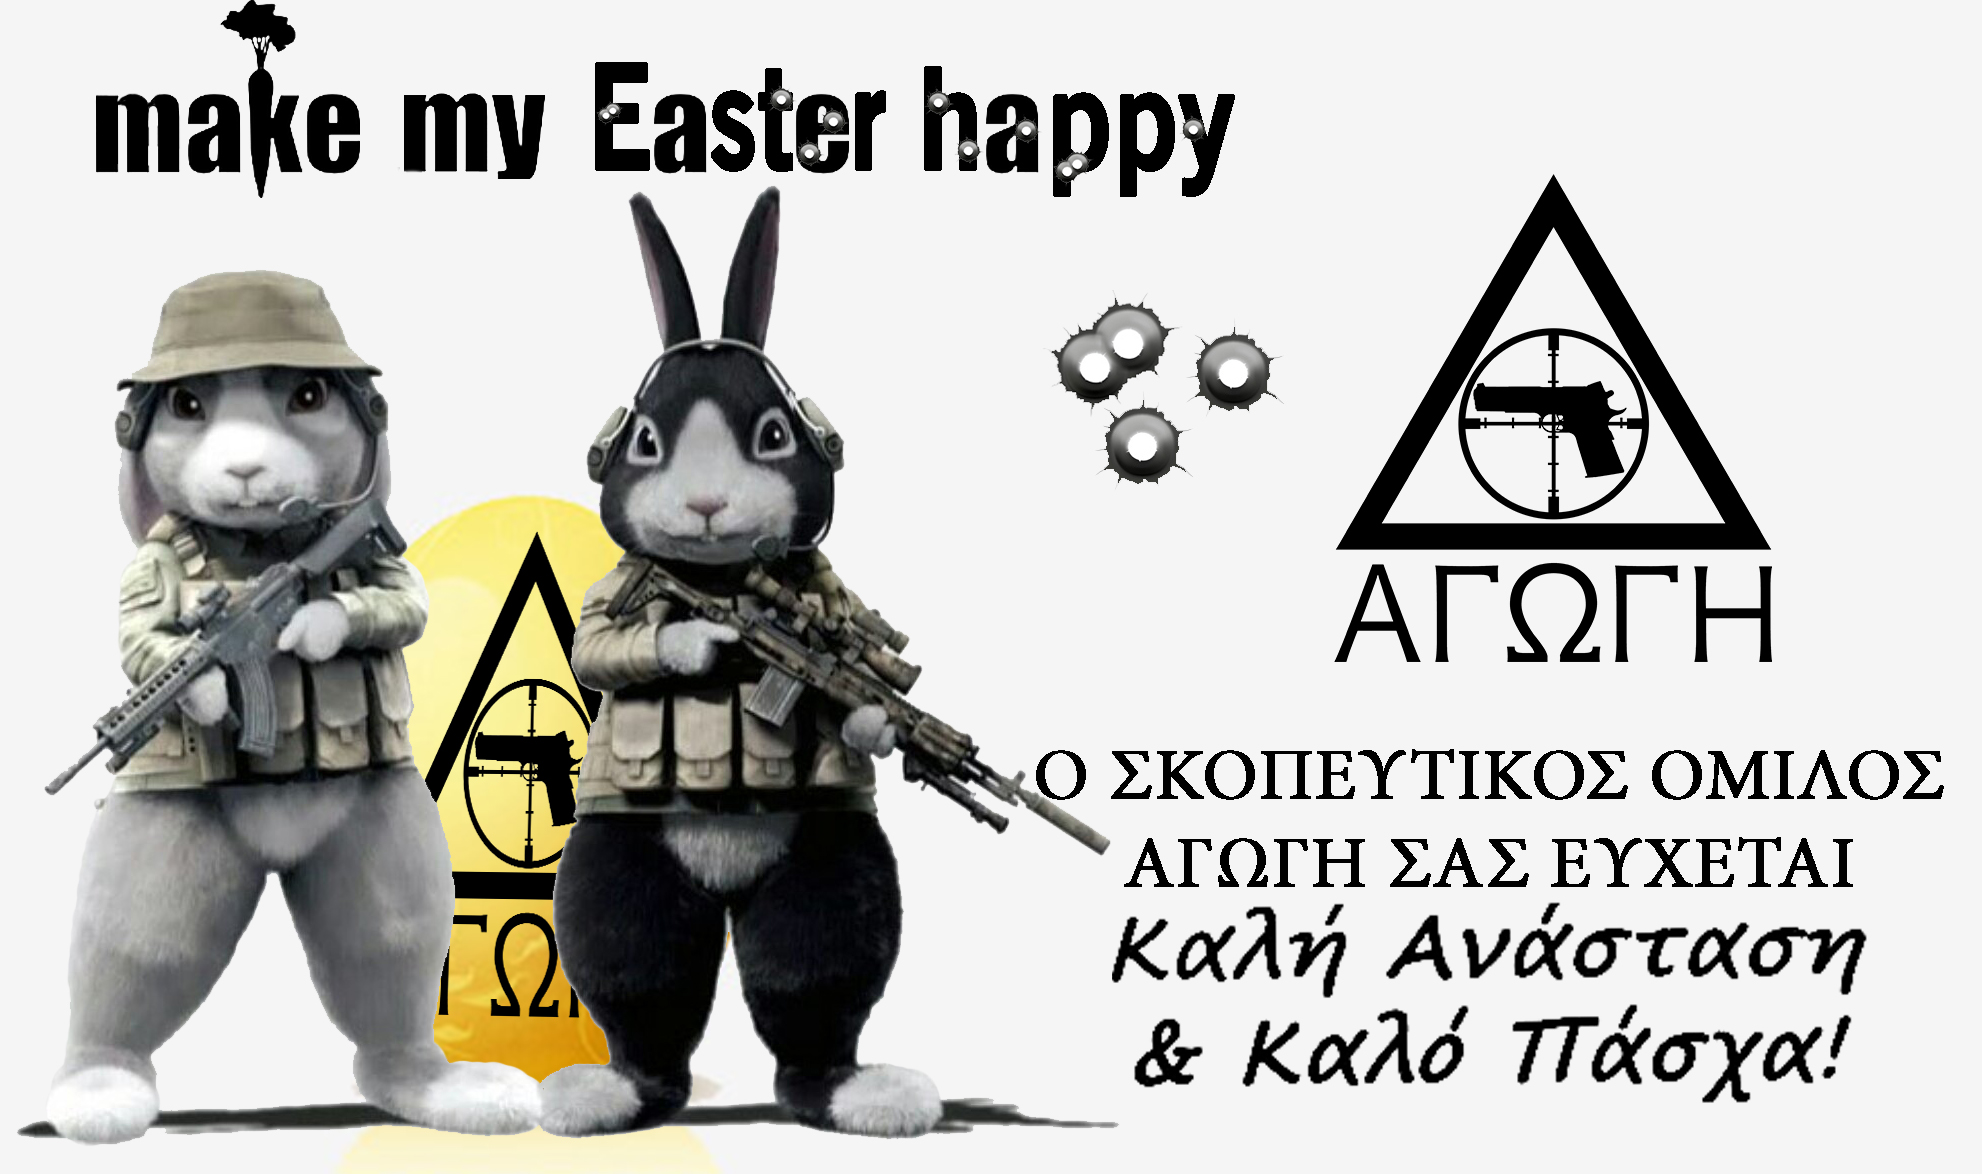 guns, easter, easter bunny, bunny, eggs, bullets, shells, casings, bullet casings, shooting, shooting club, bullet holes, tactical